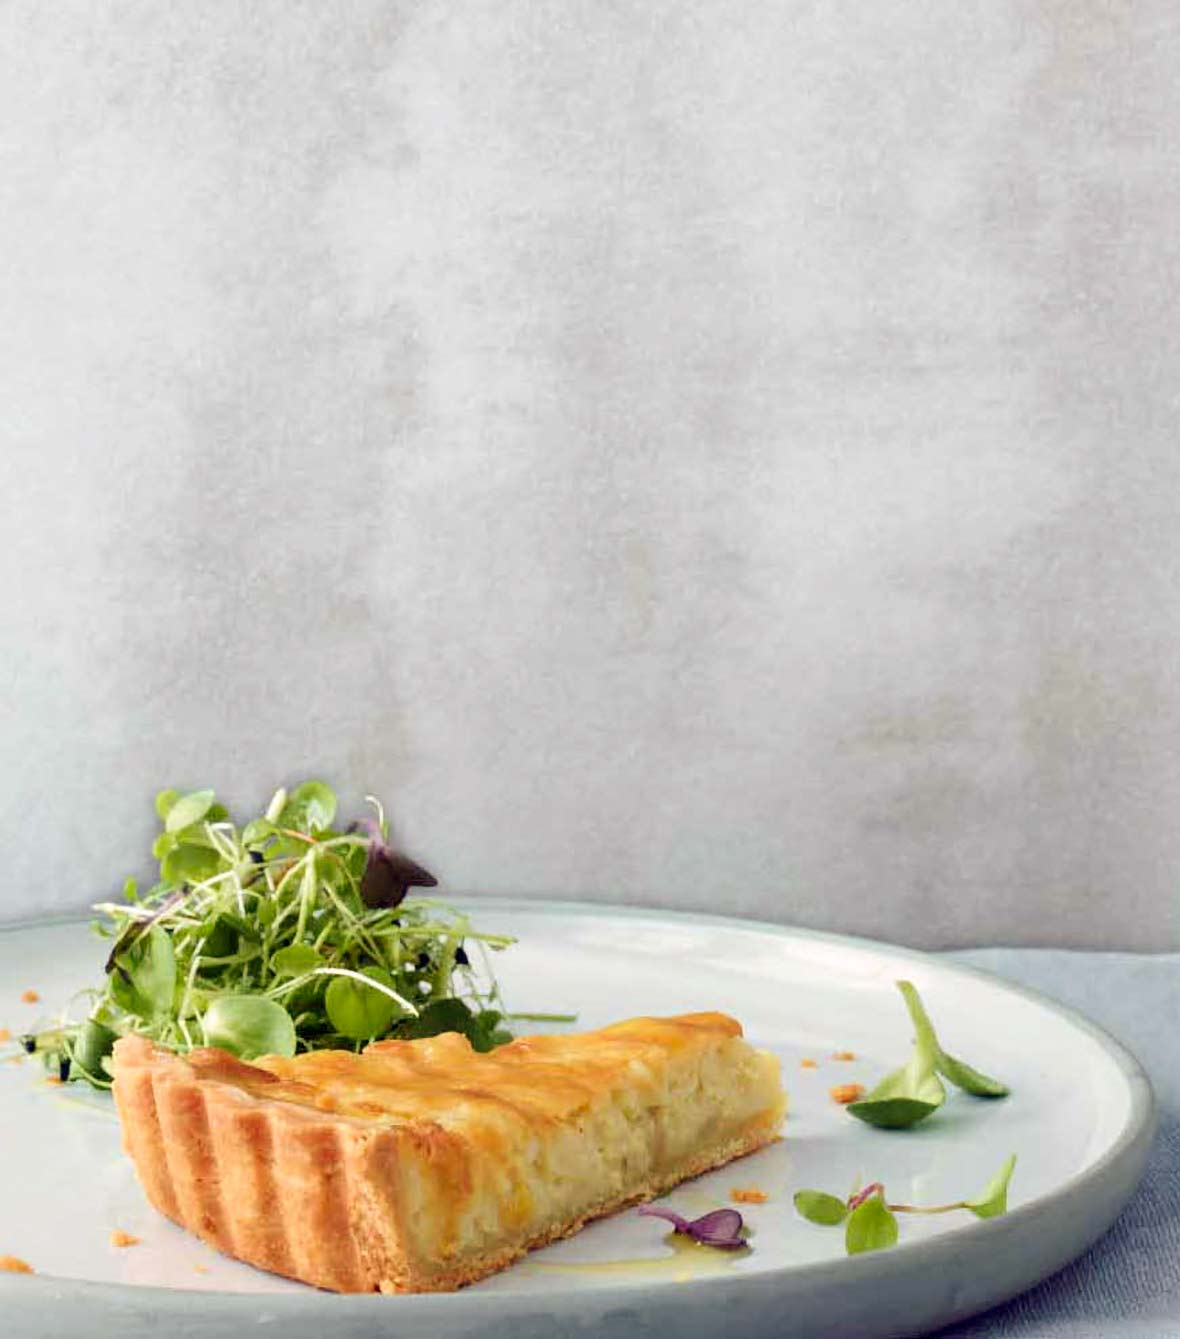 A slice of a creamy onion tart, with a flaky crust and tossed mixed salad on a white plate